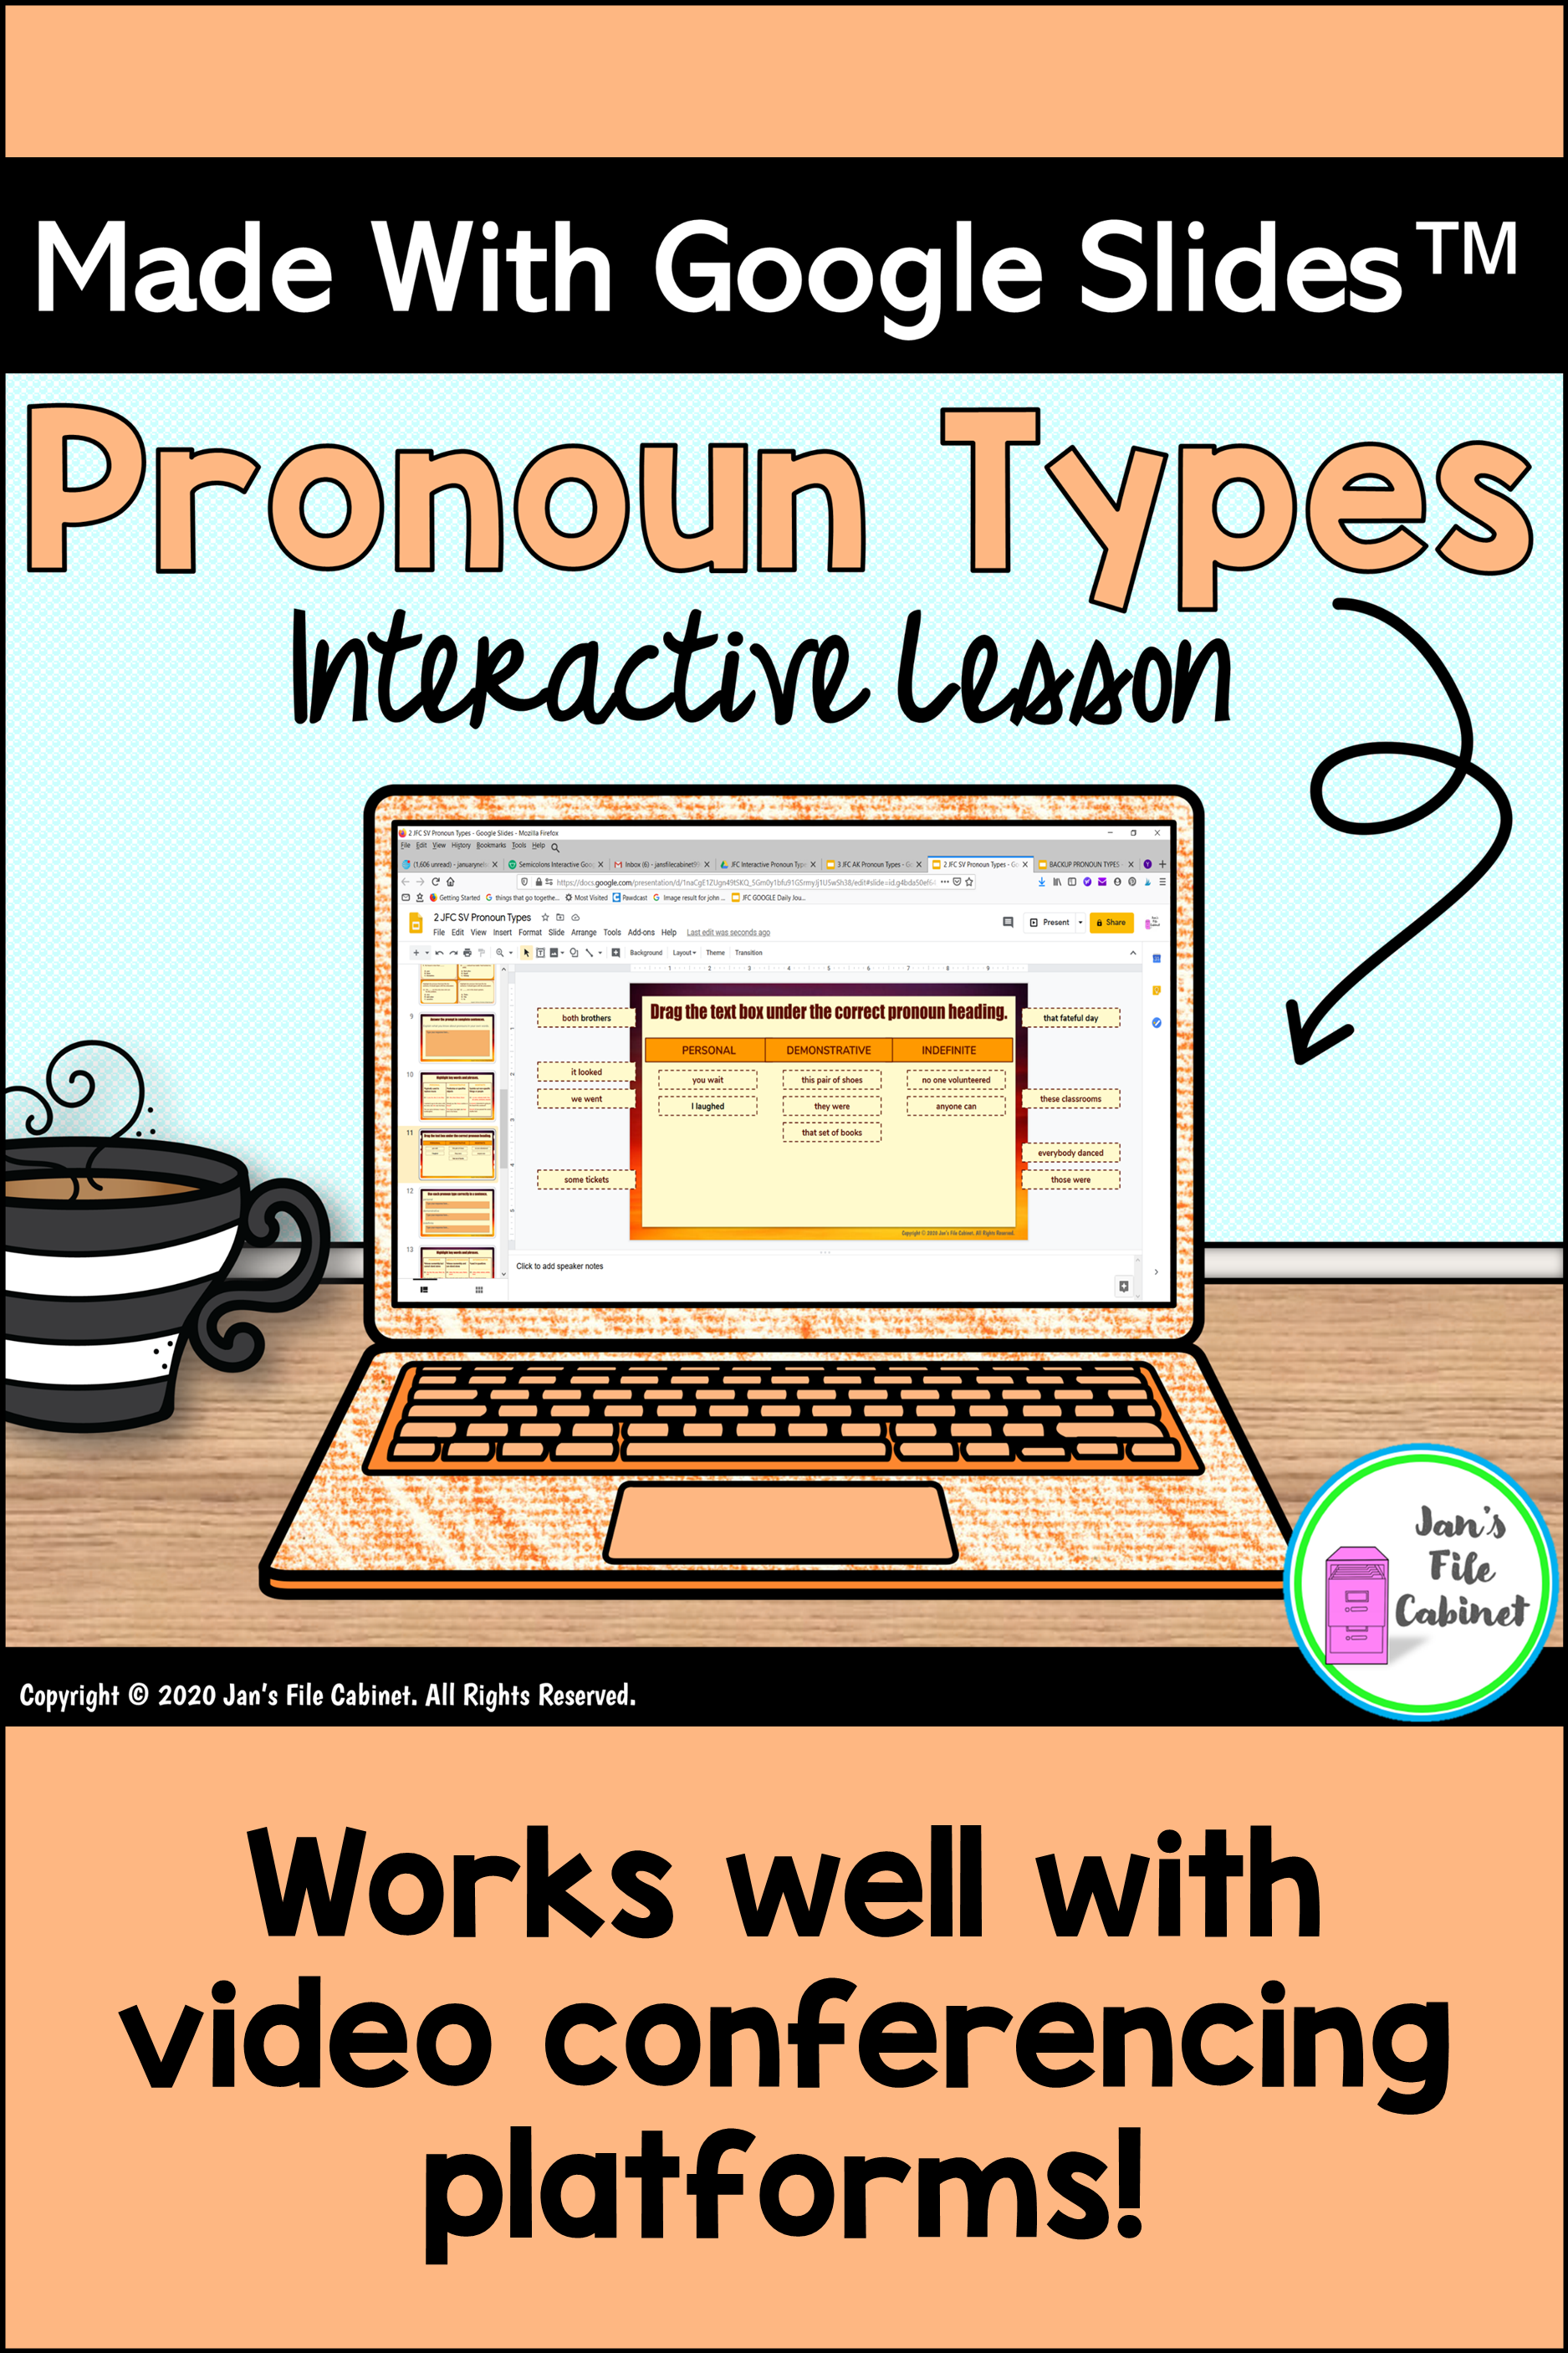 Pronoun Types Interactive Slides Lesson